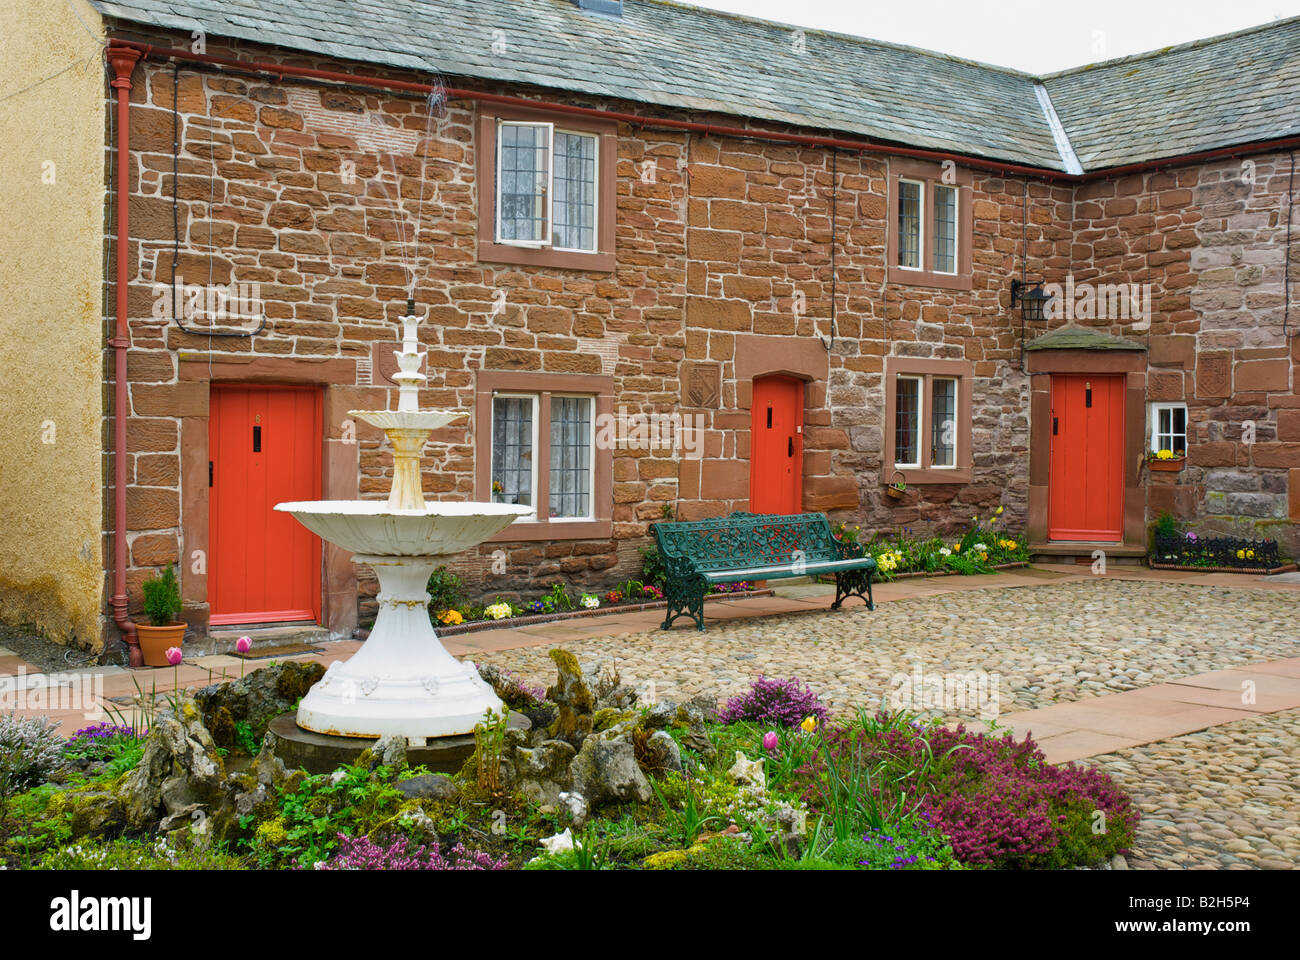 Almshouses, known as St Anne's Hospital, Appleby, Cumbria, UK, founded by Lady Anne Clifford in 1651 - Stock Image